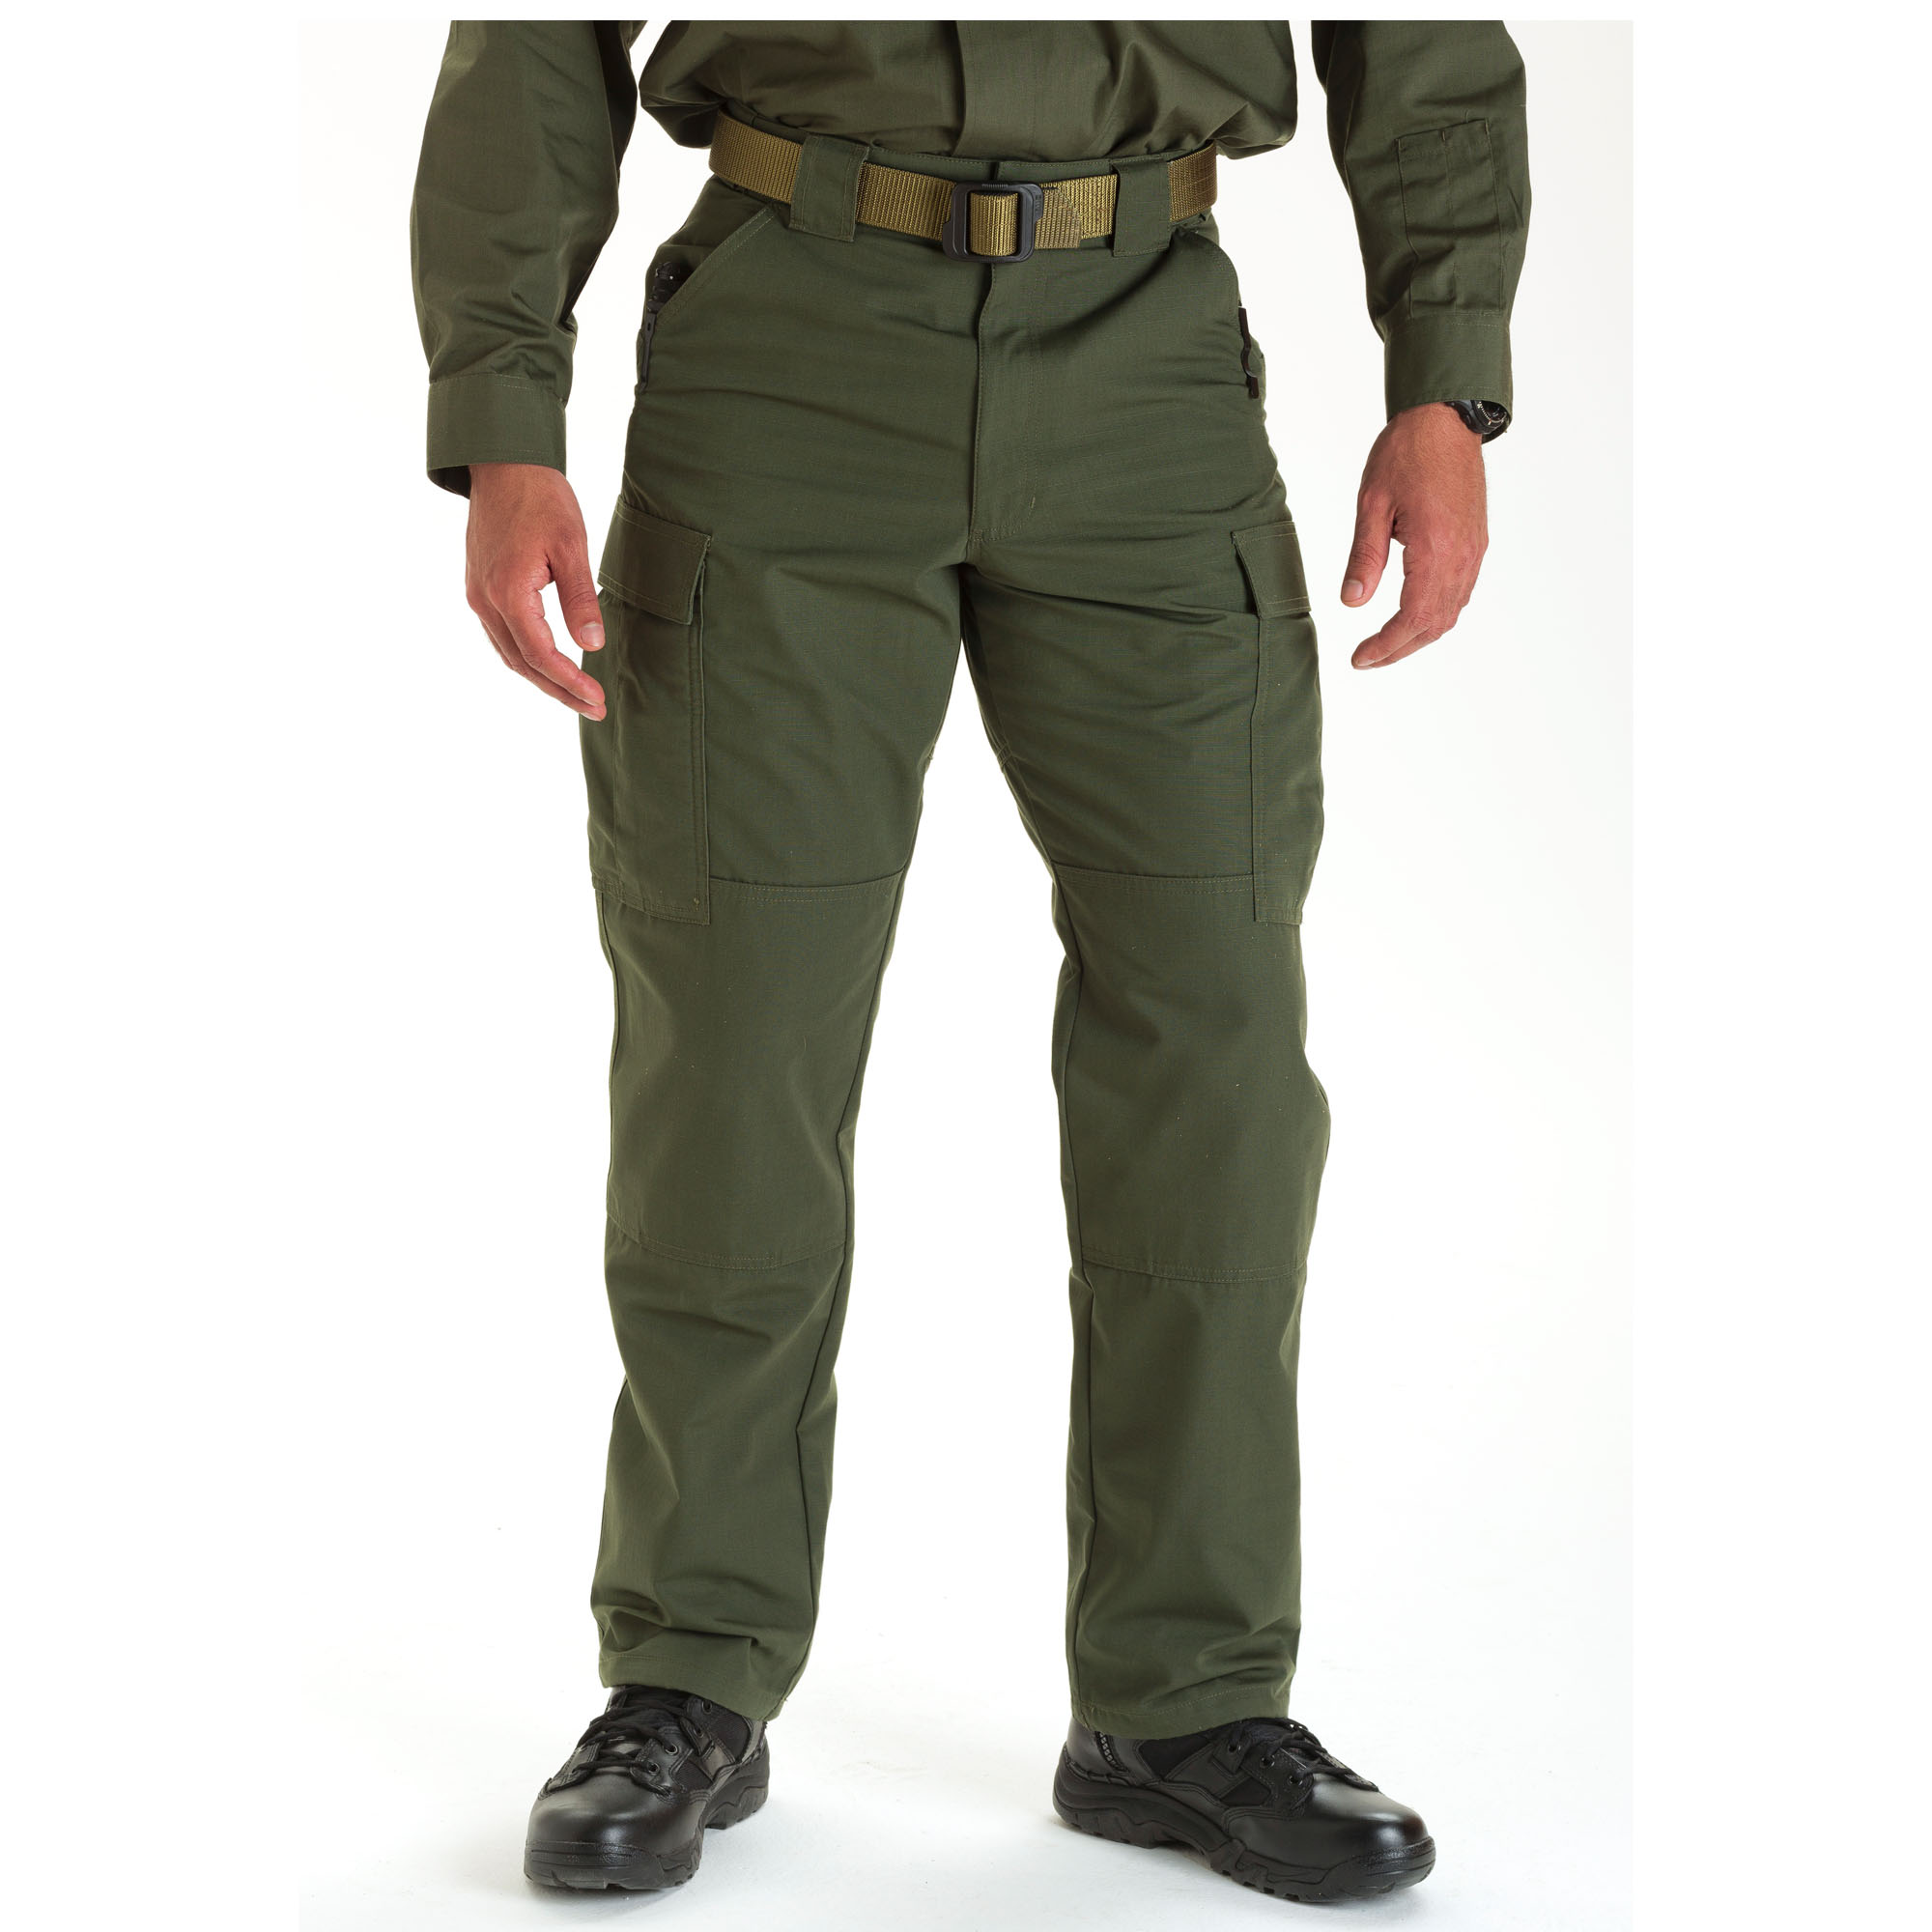 TDU Pants - Ripstop-5.11 Tactical